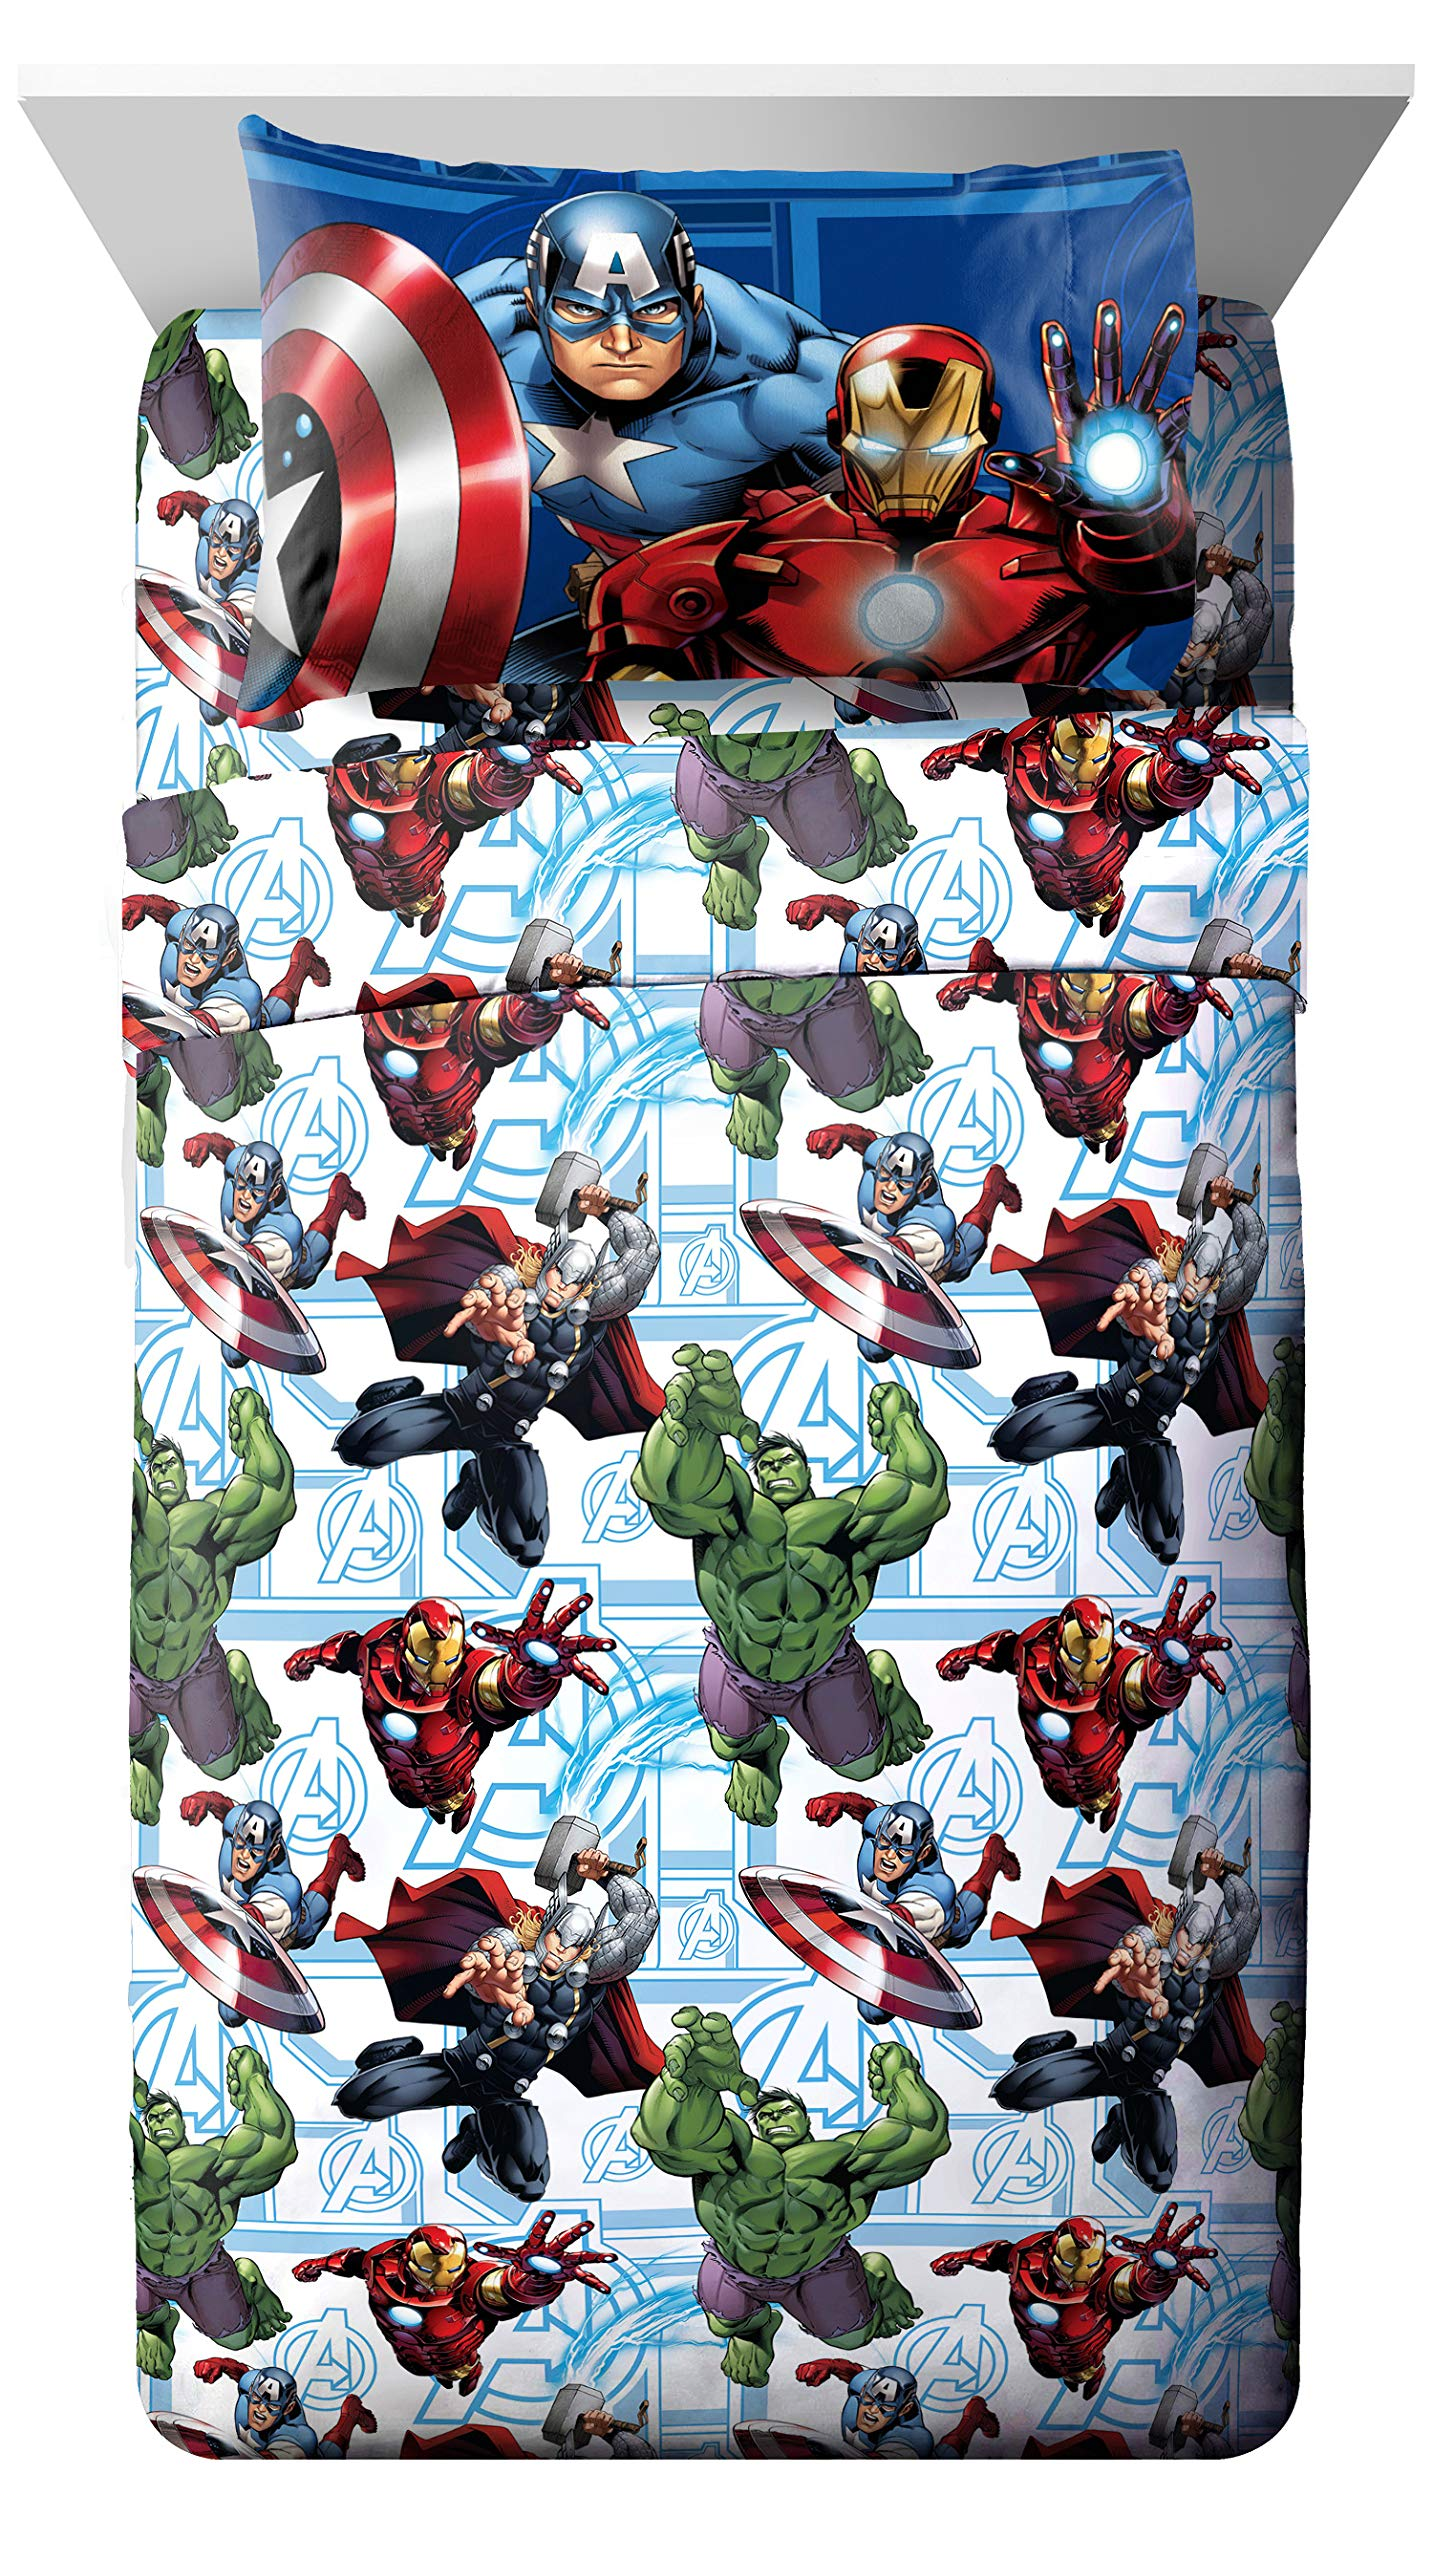 Marvel Avengers Heroic Age Blue/White 3 Piece Twin Sheet Set with Captain America, Thor, Ironman & Hulk by Jay Franco